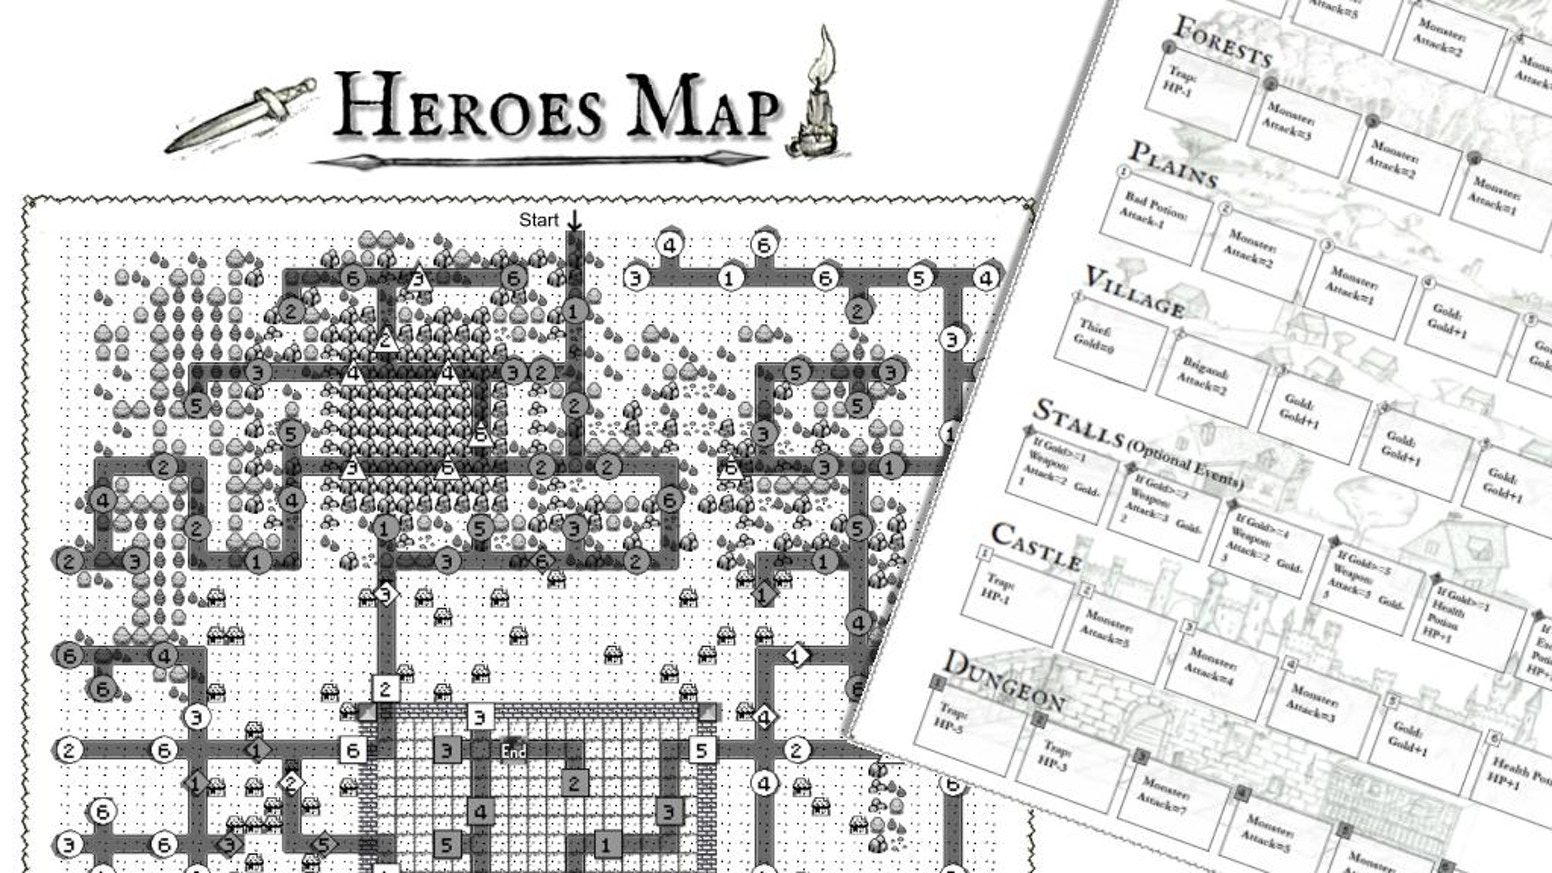 A tabletop game for one or more players: find the optimal path to win